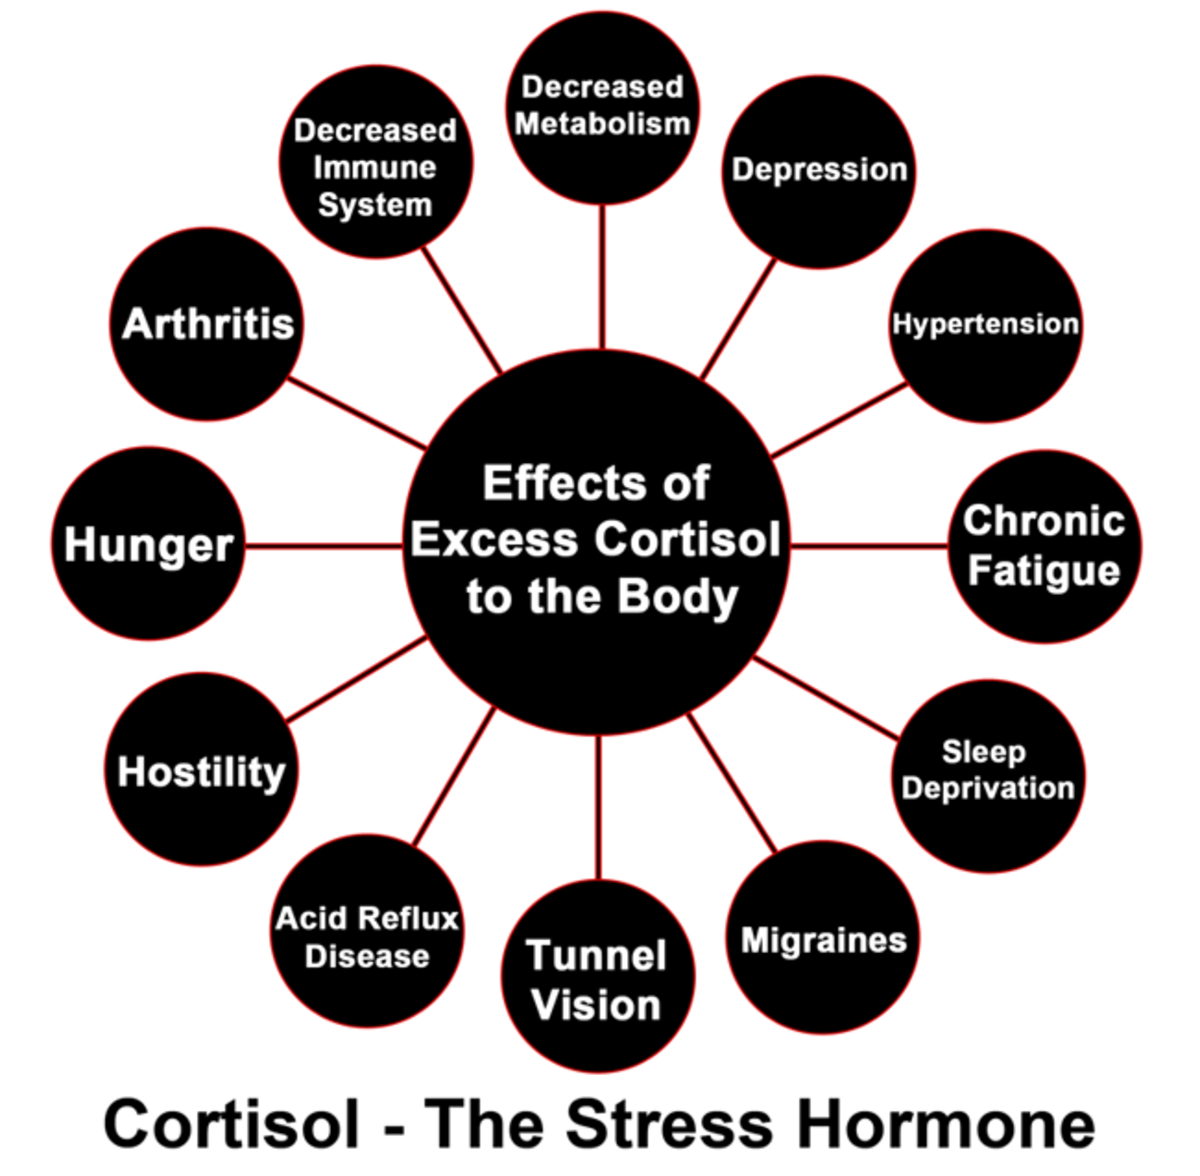 Effects of Cortisol on the Body